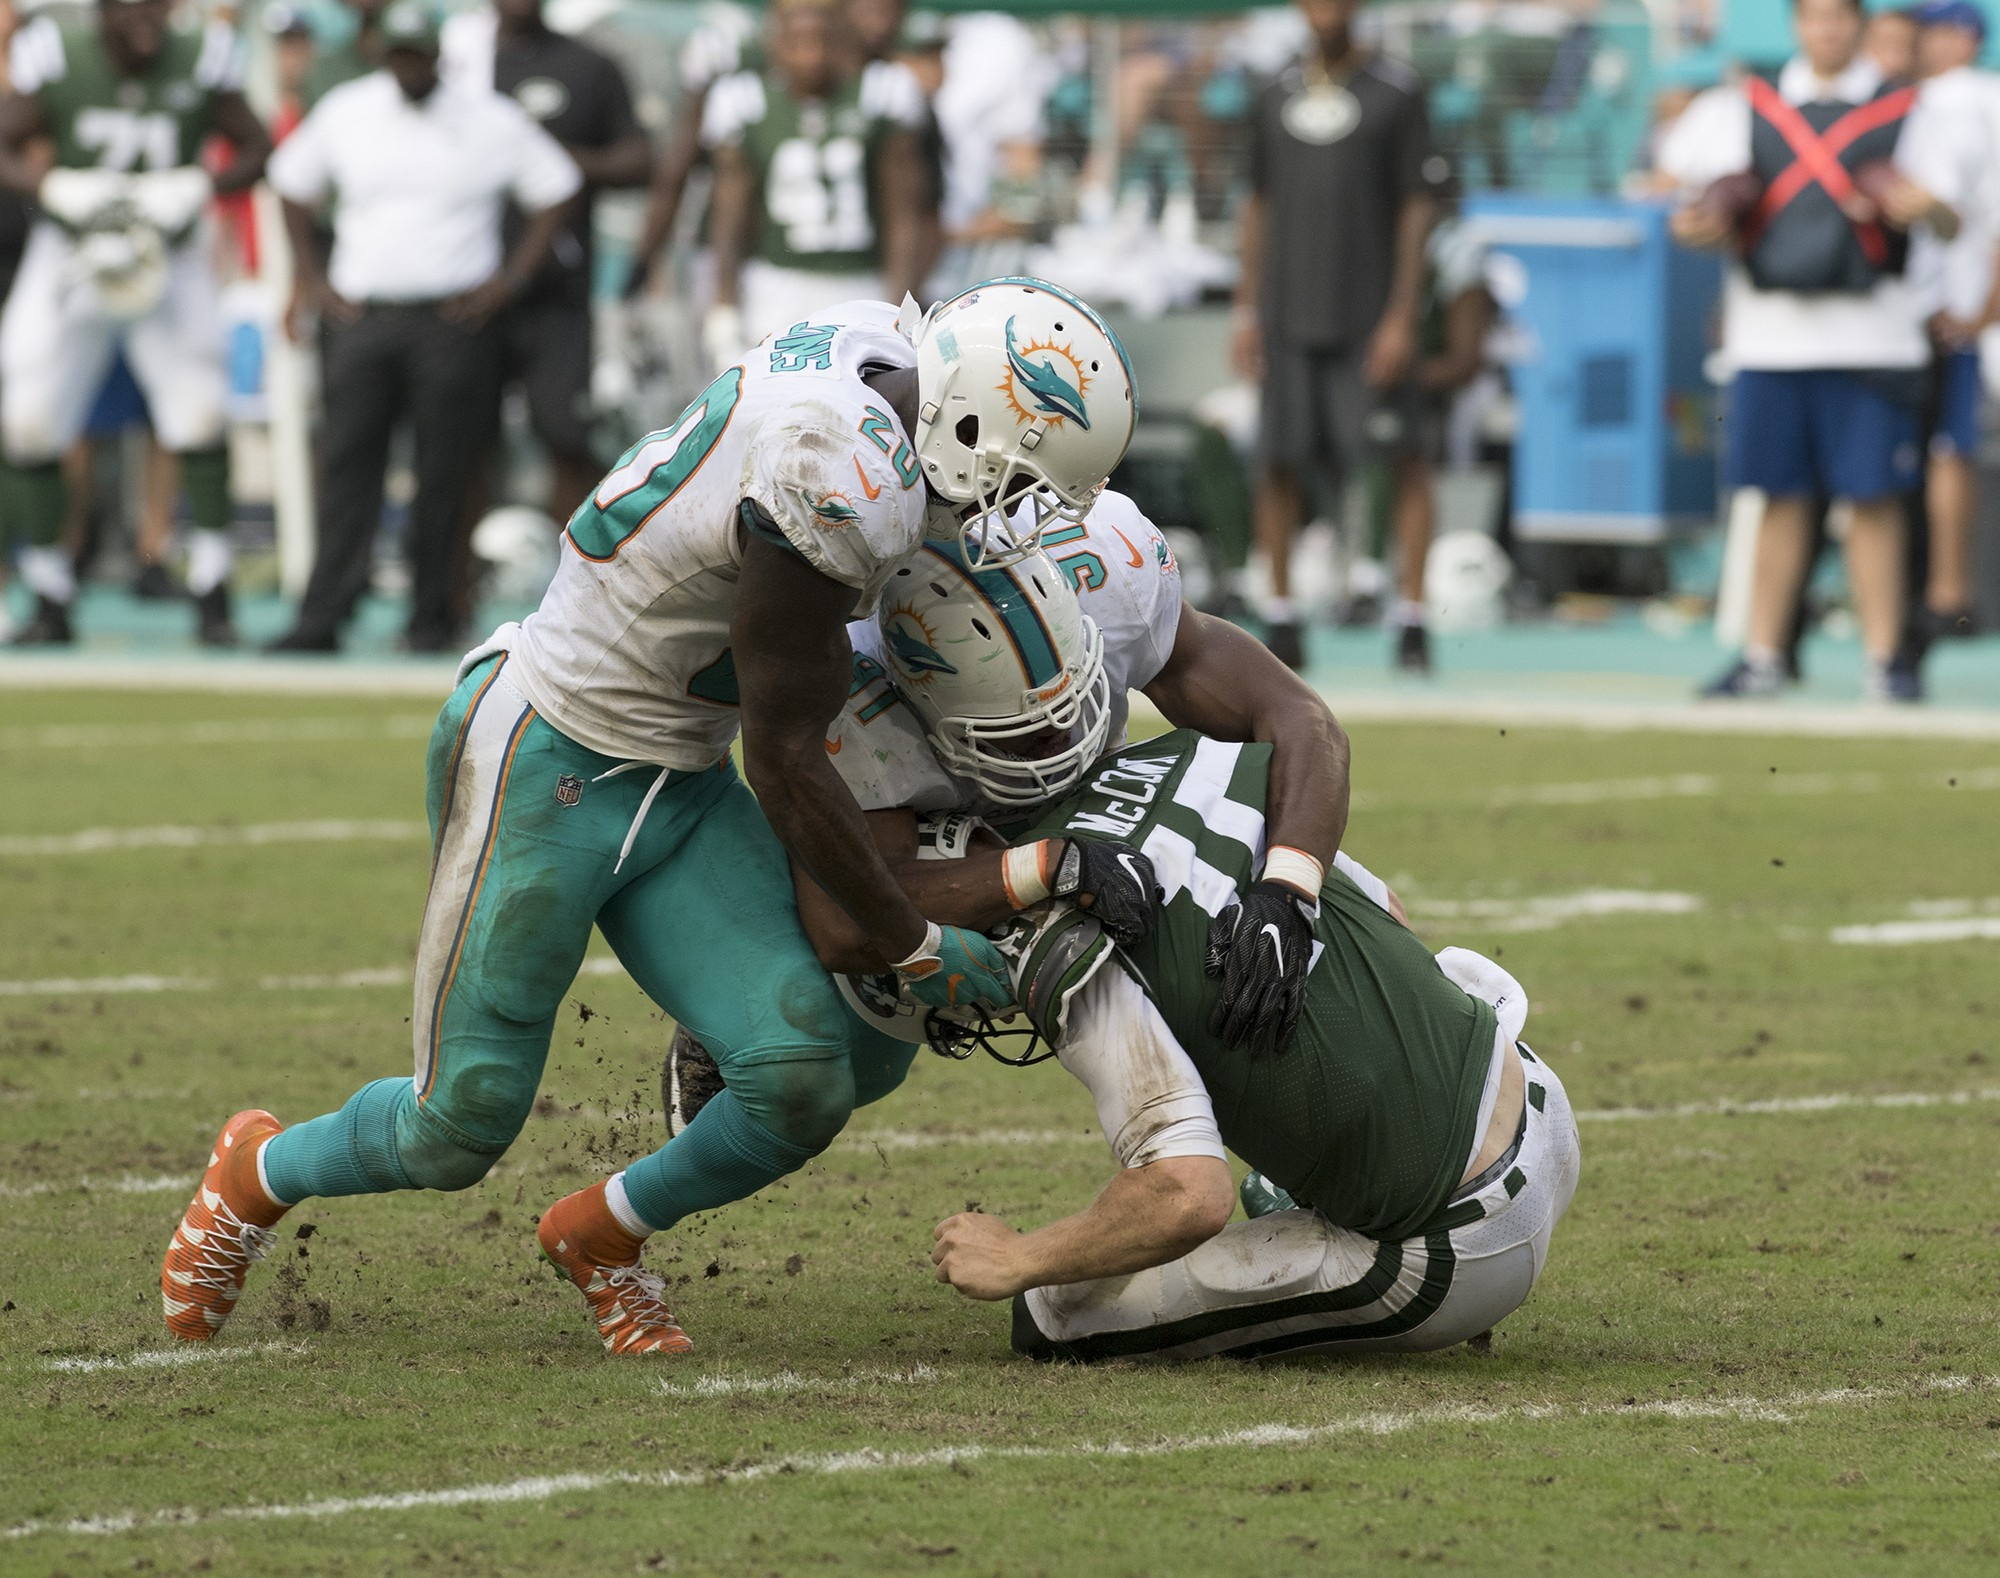 New York Jets quarterback Josh McCown (15) is sacked for a loss by Miami Dolphins defensive end Cameron Wake (91) and Miami Dolphins free safety Reshad Jones (20) during 2nd half play of an NFL football game on Sunday, Oct. 22, 2017, in Miami Gardens, Fla. The Miami Dolphins went on to defeat the New work Jets 28-31.(Donald Edgar/El Latino Digital)